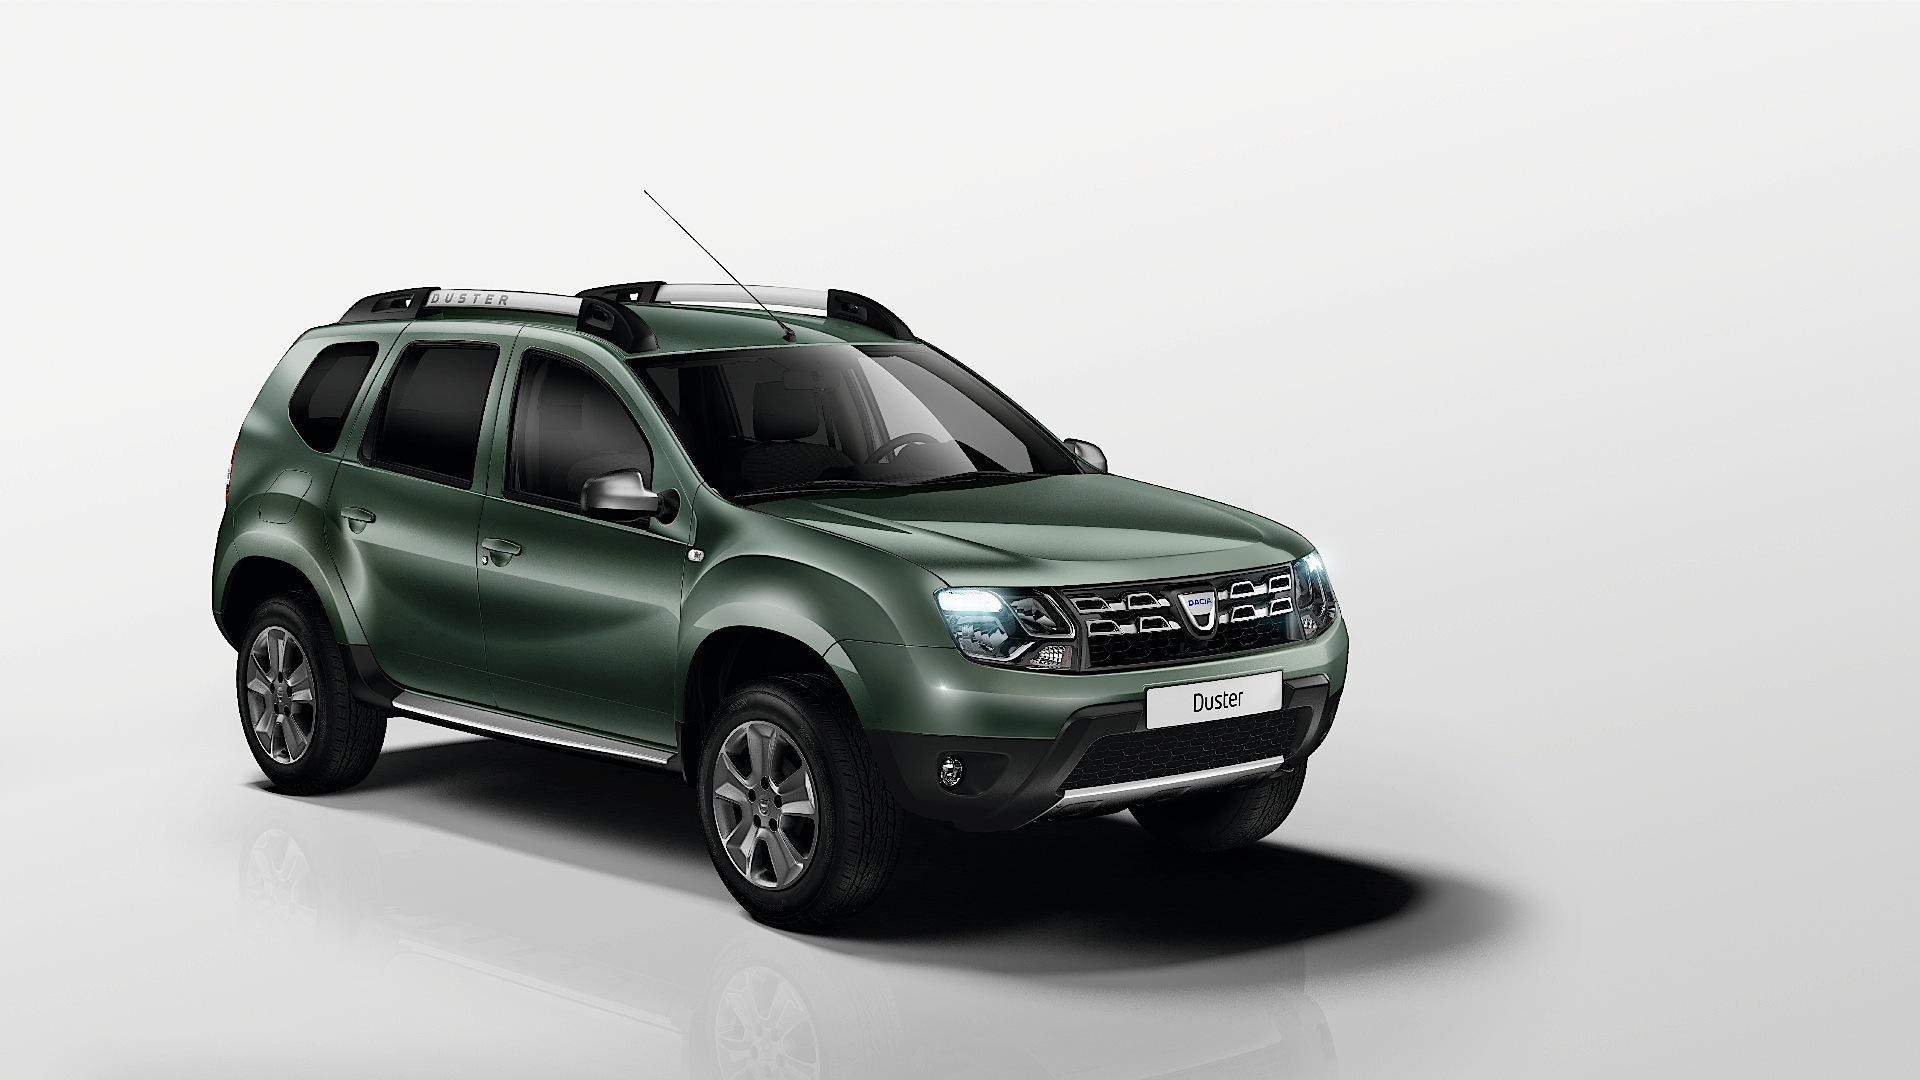 dacia duster 2013 2014 2015 2016 autoevolution. Black Bedroom Furniture Sets. Home Design Ideas